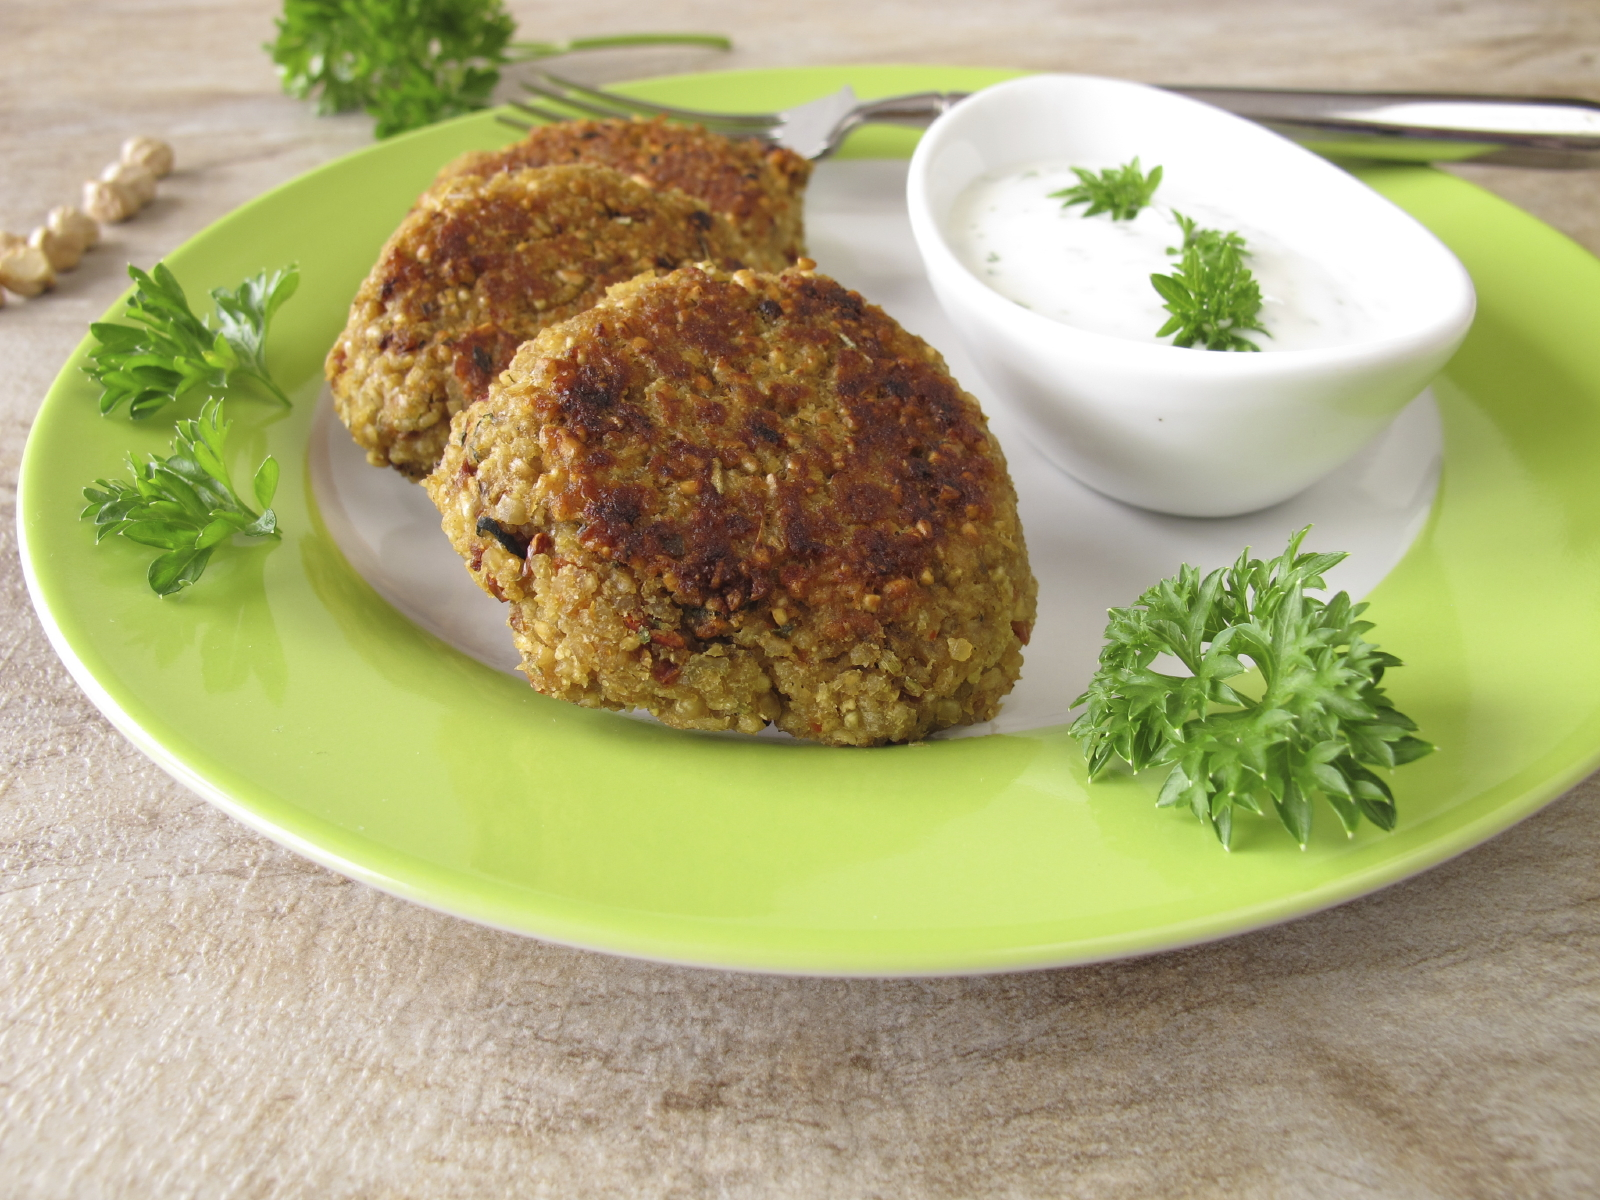 chick pea and bean patties: Pulpetti tal-ful u ċ-ċiċri mħawrin